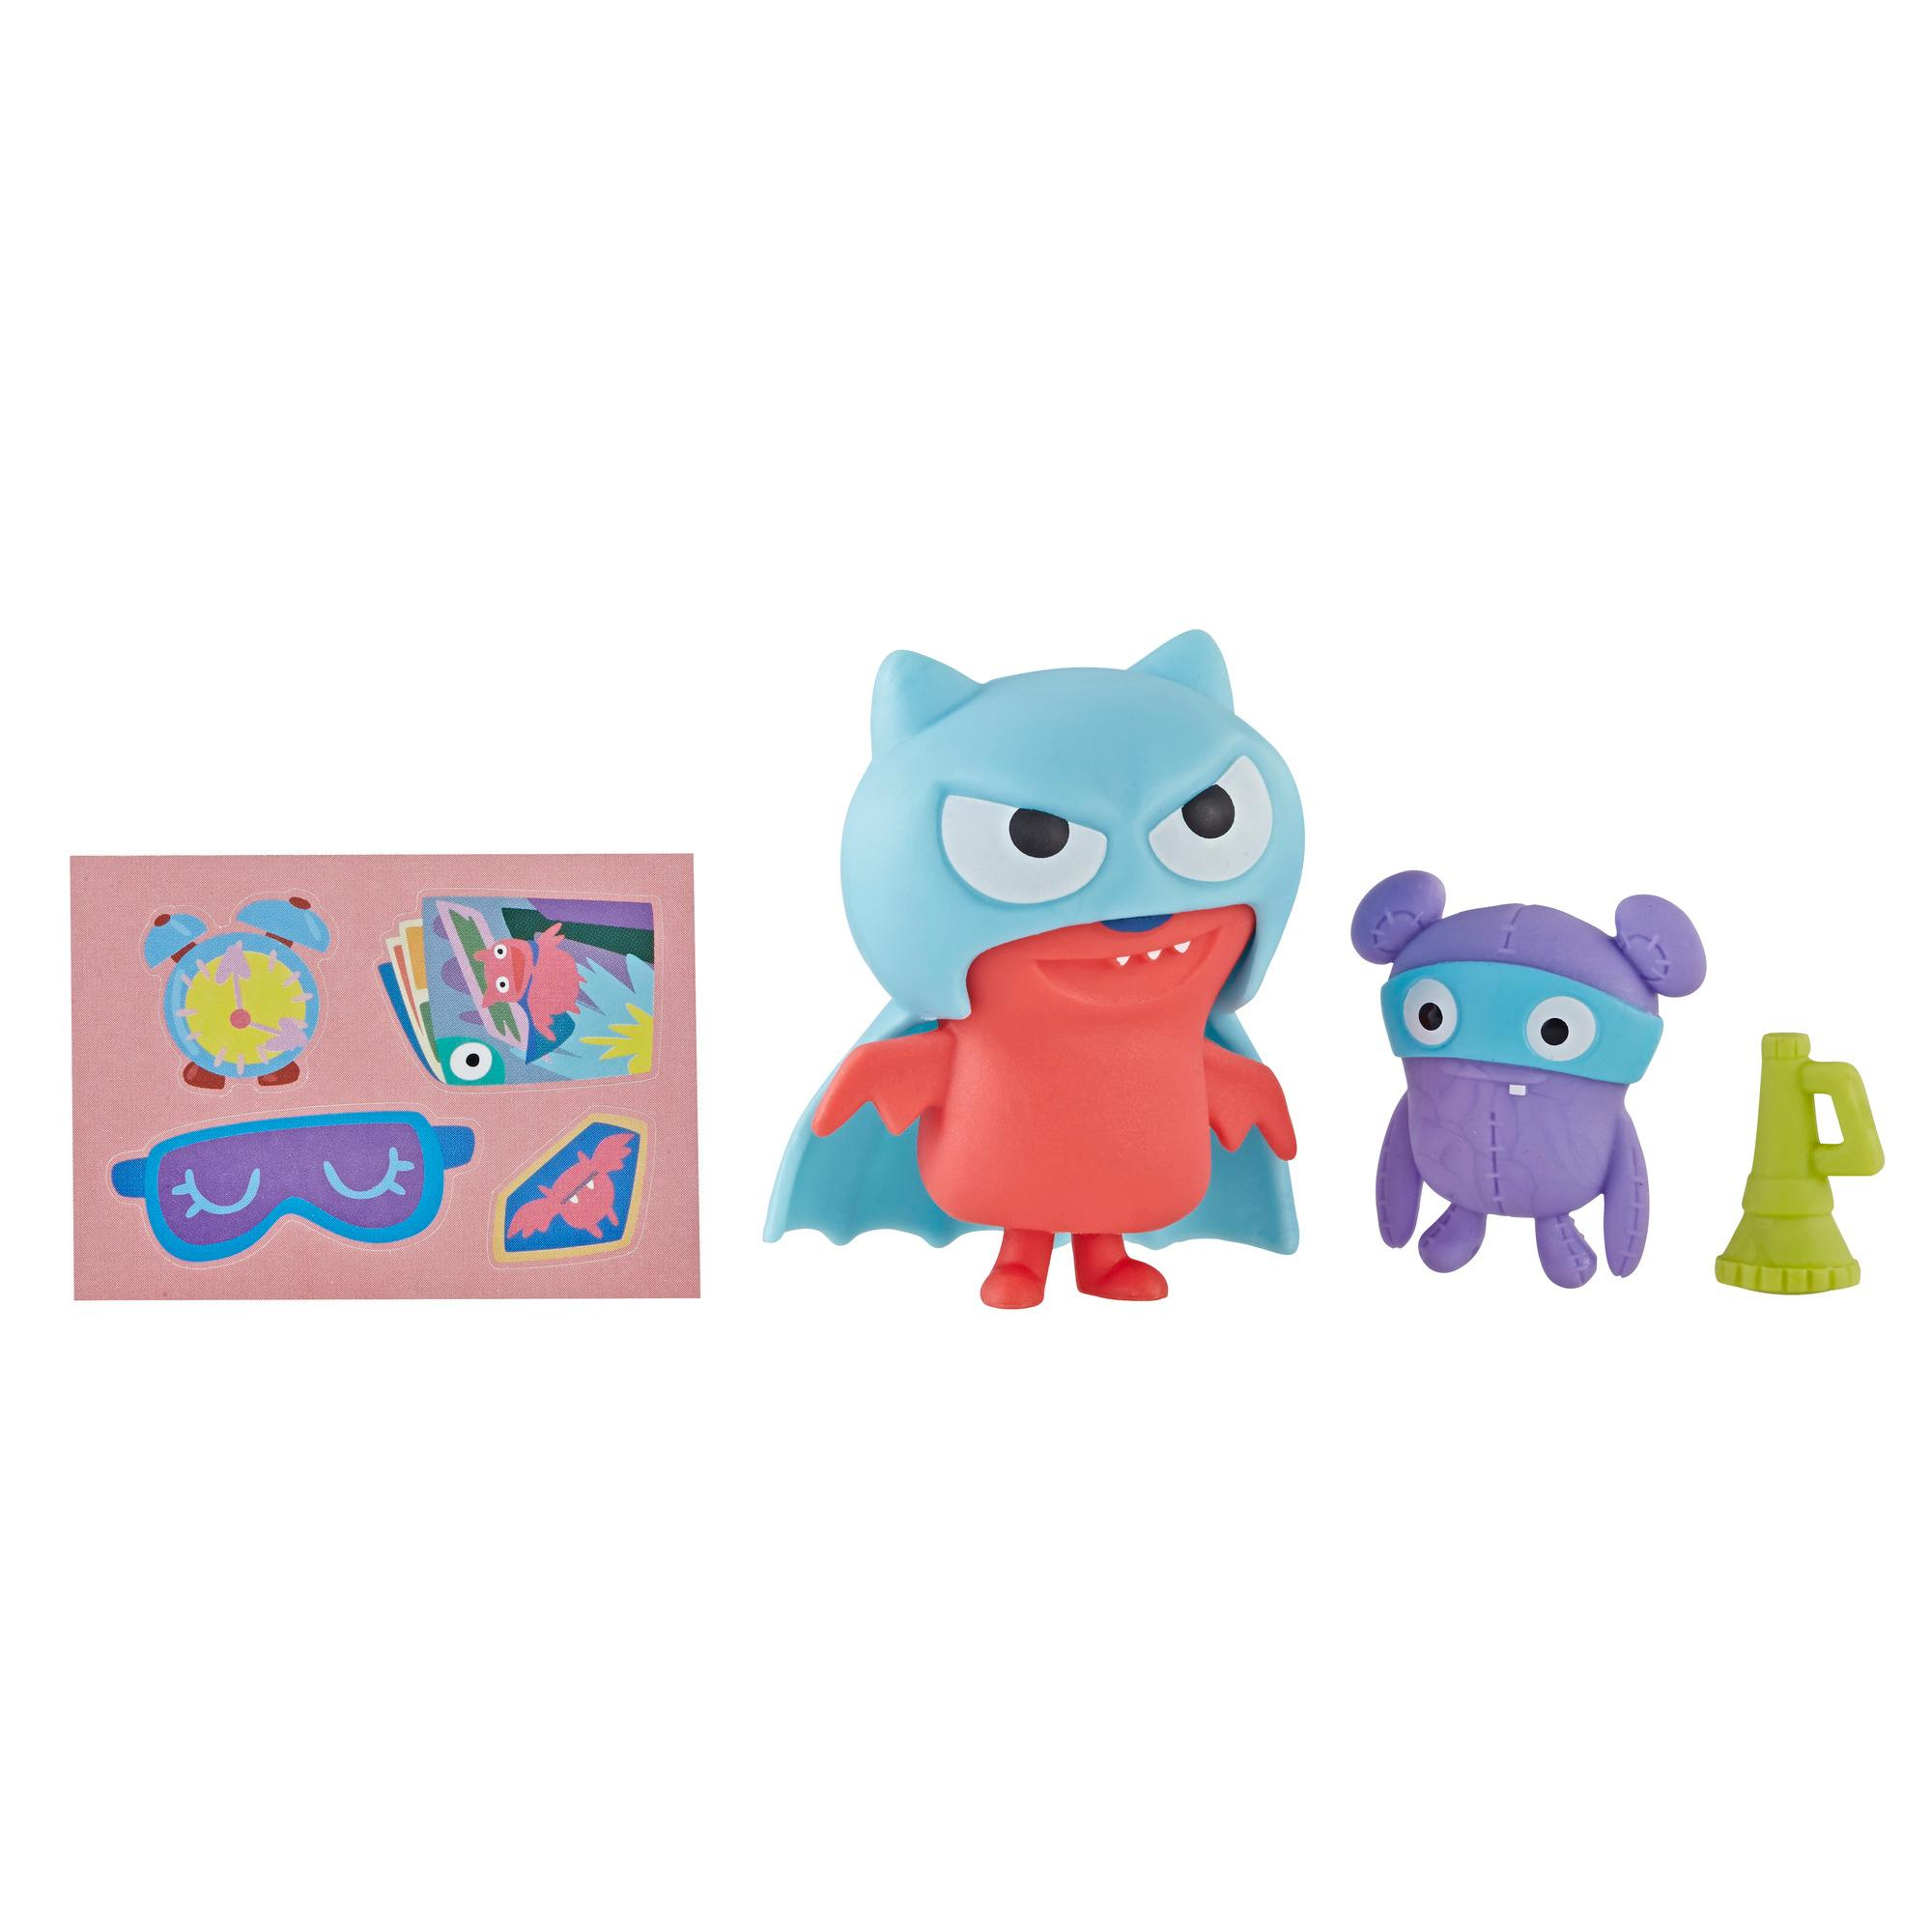 UglyDolls Surprise Disguise Super Lucky Bat Toy, Figure and Accessories